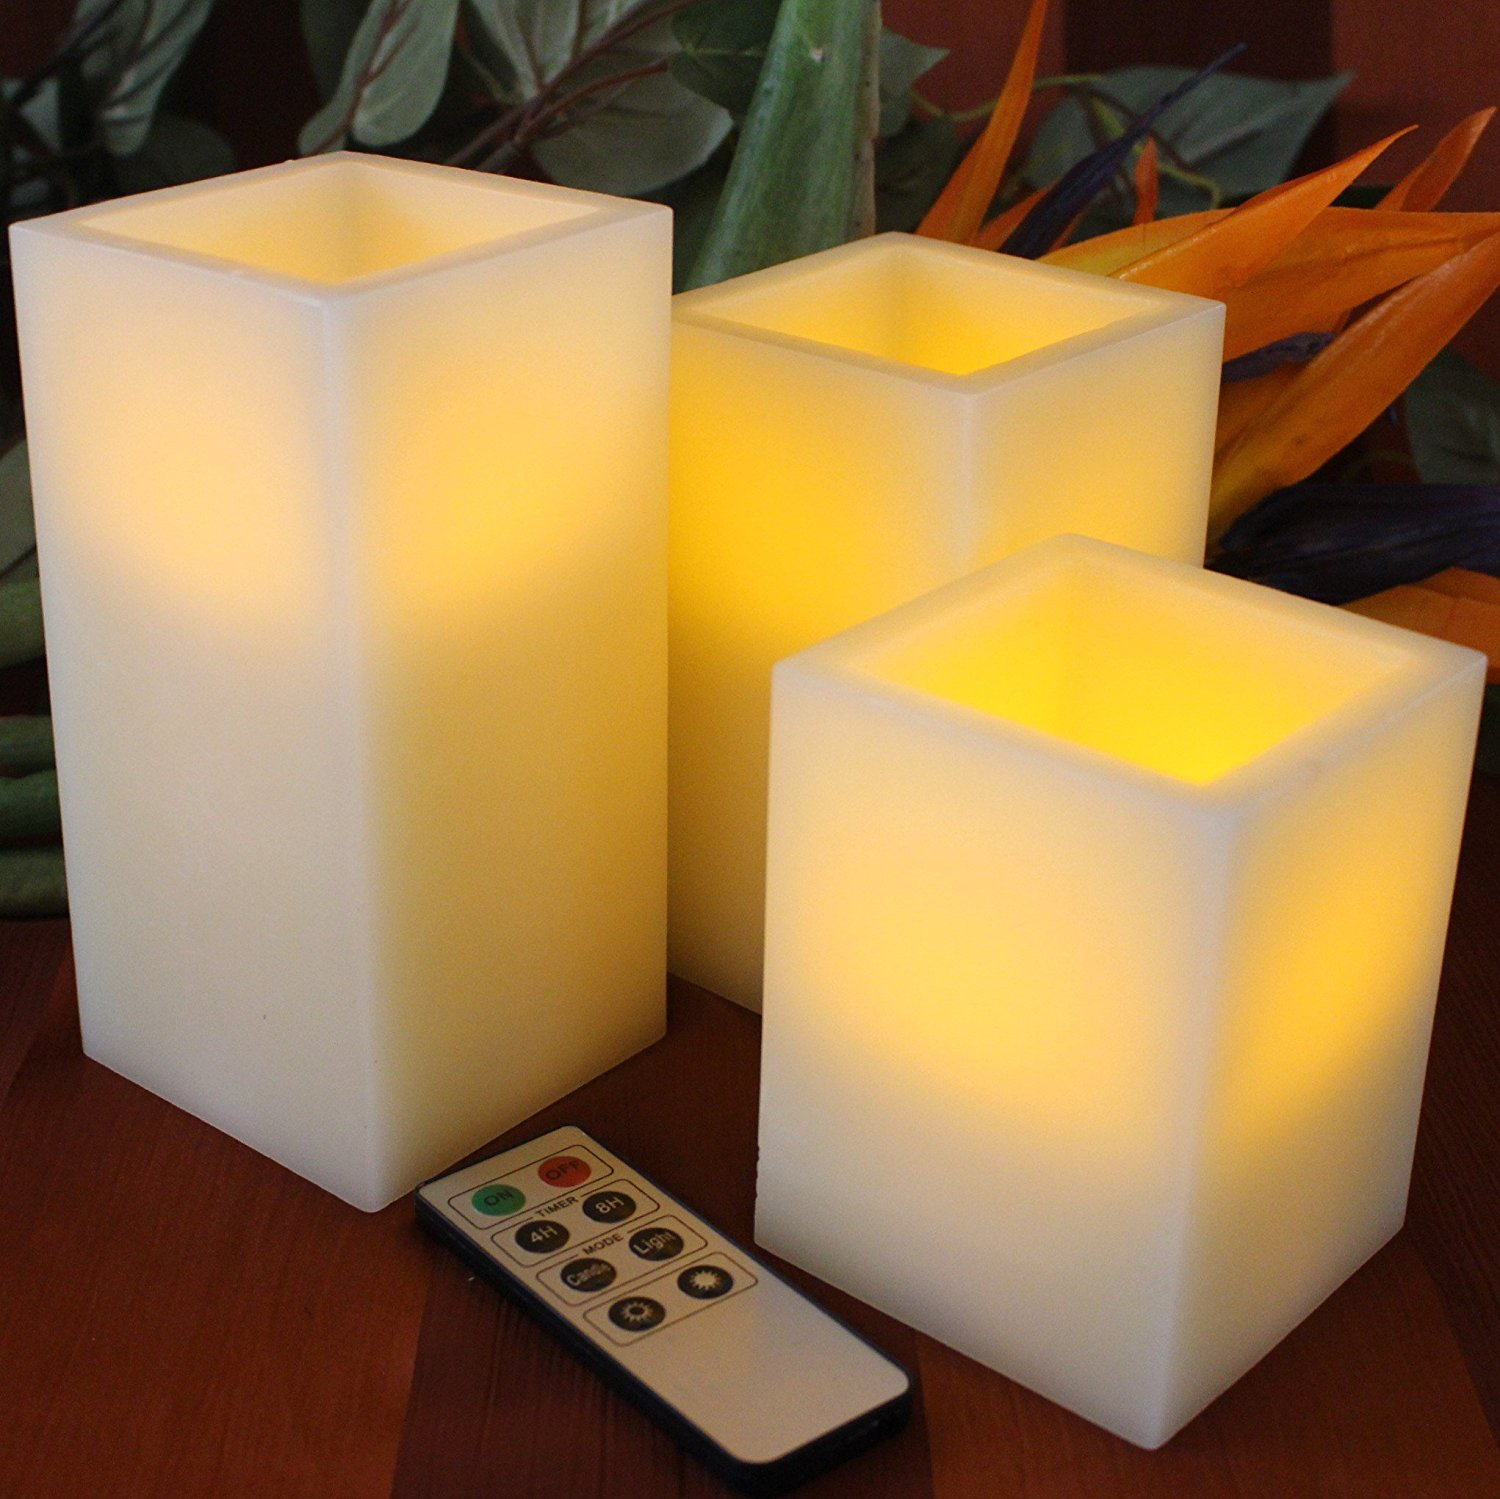 Candles with remote